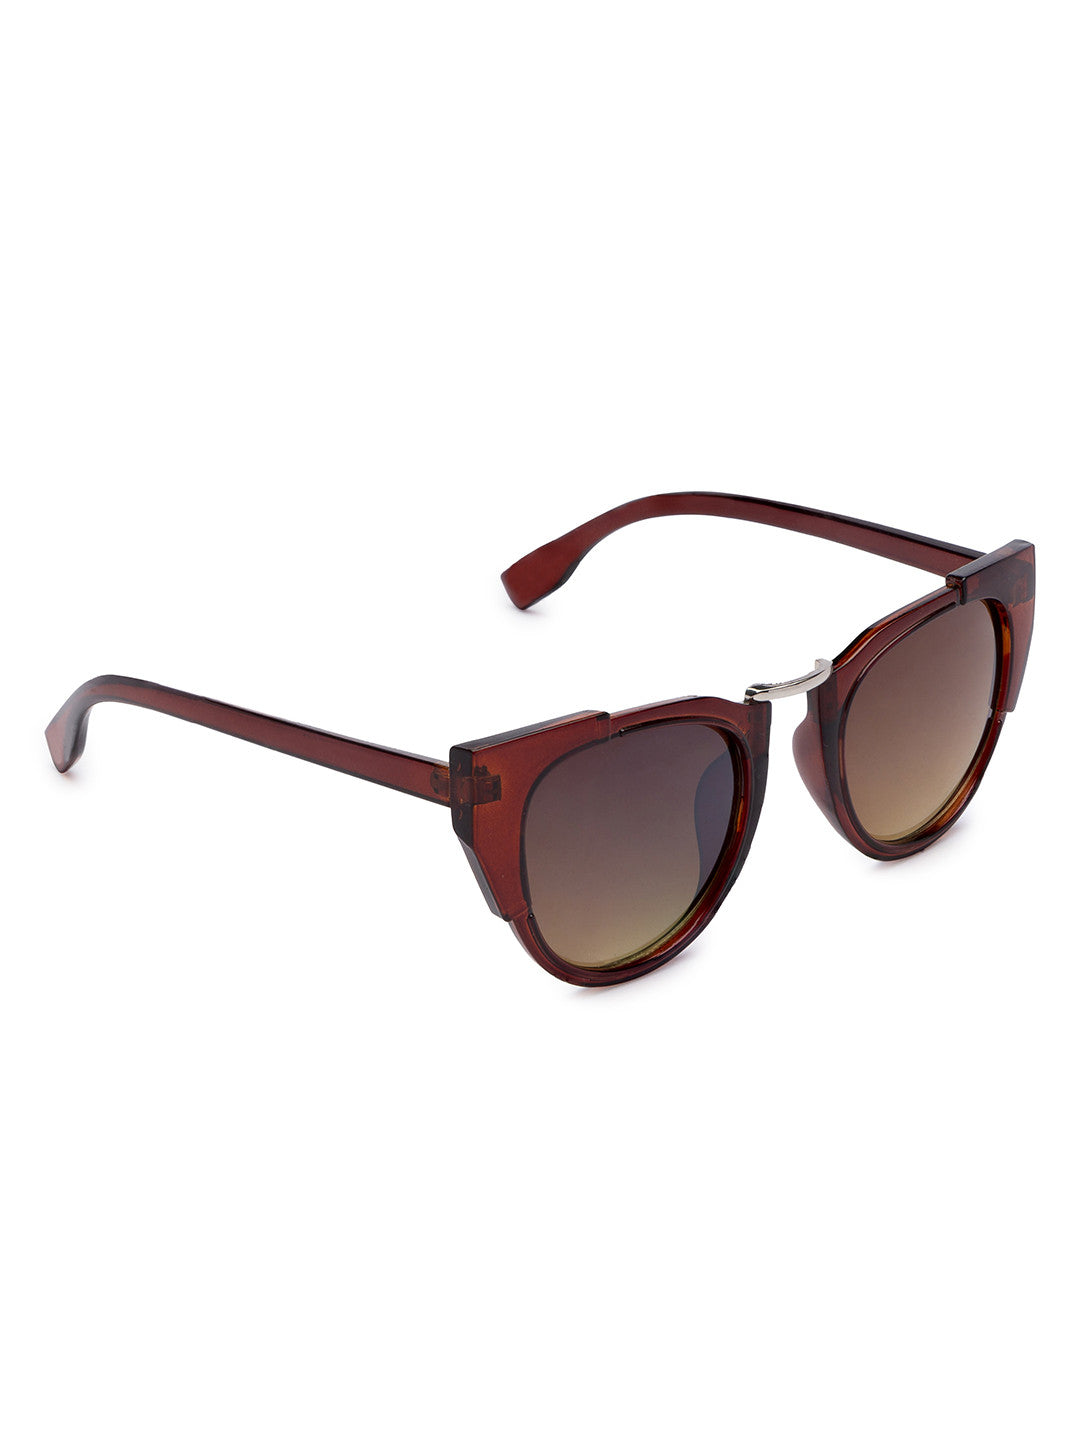 Brown Full Rim Wayfarer Sunglasses-3